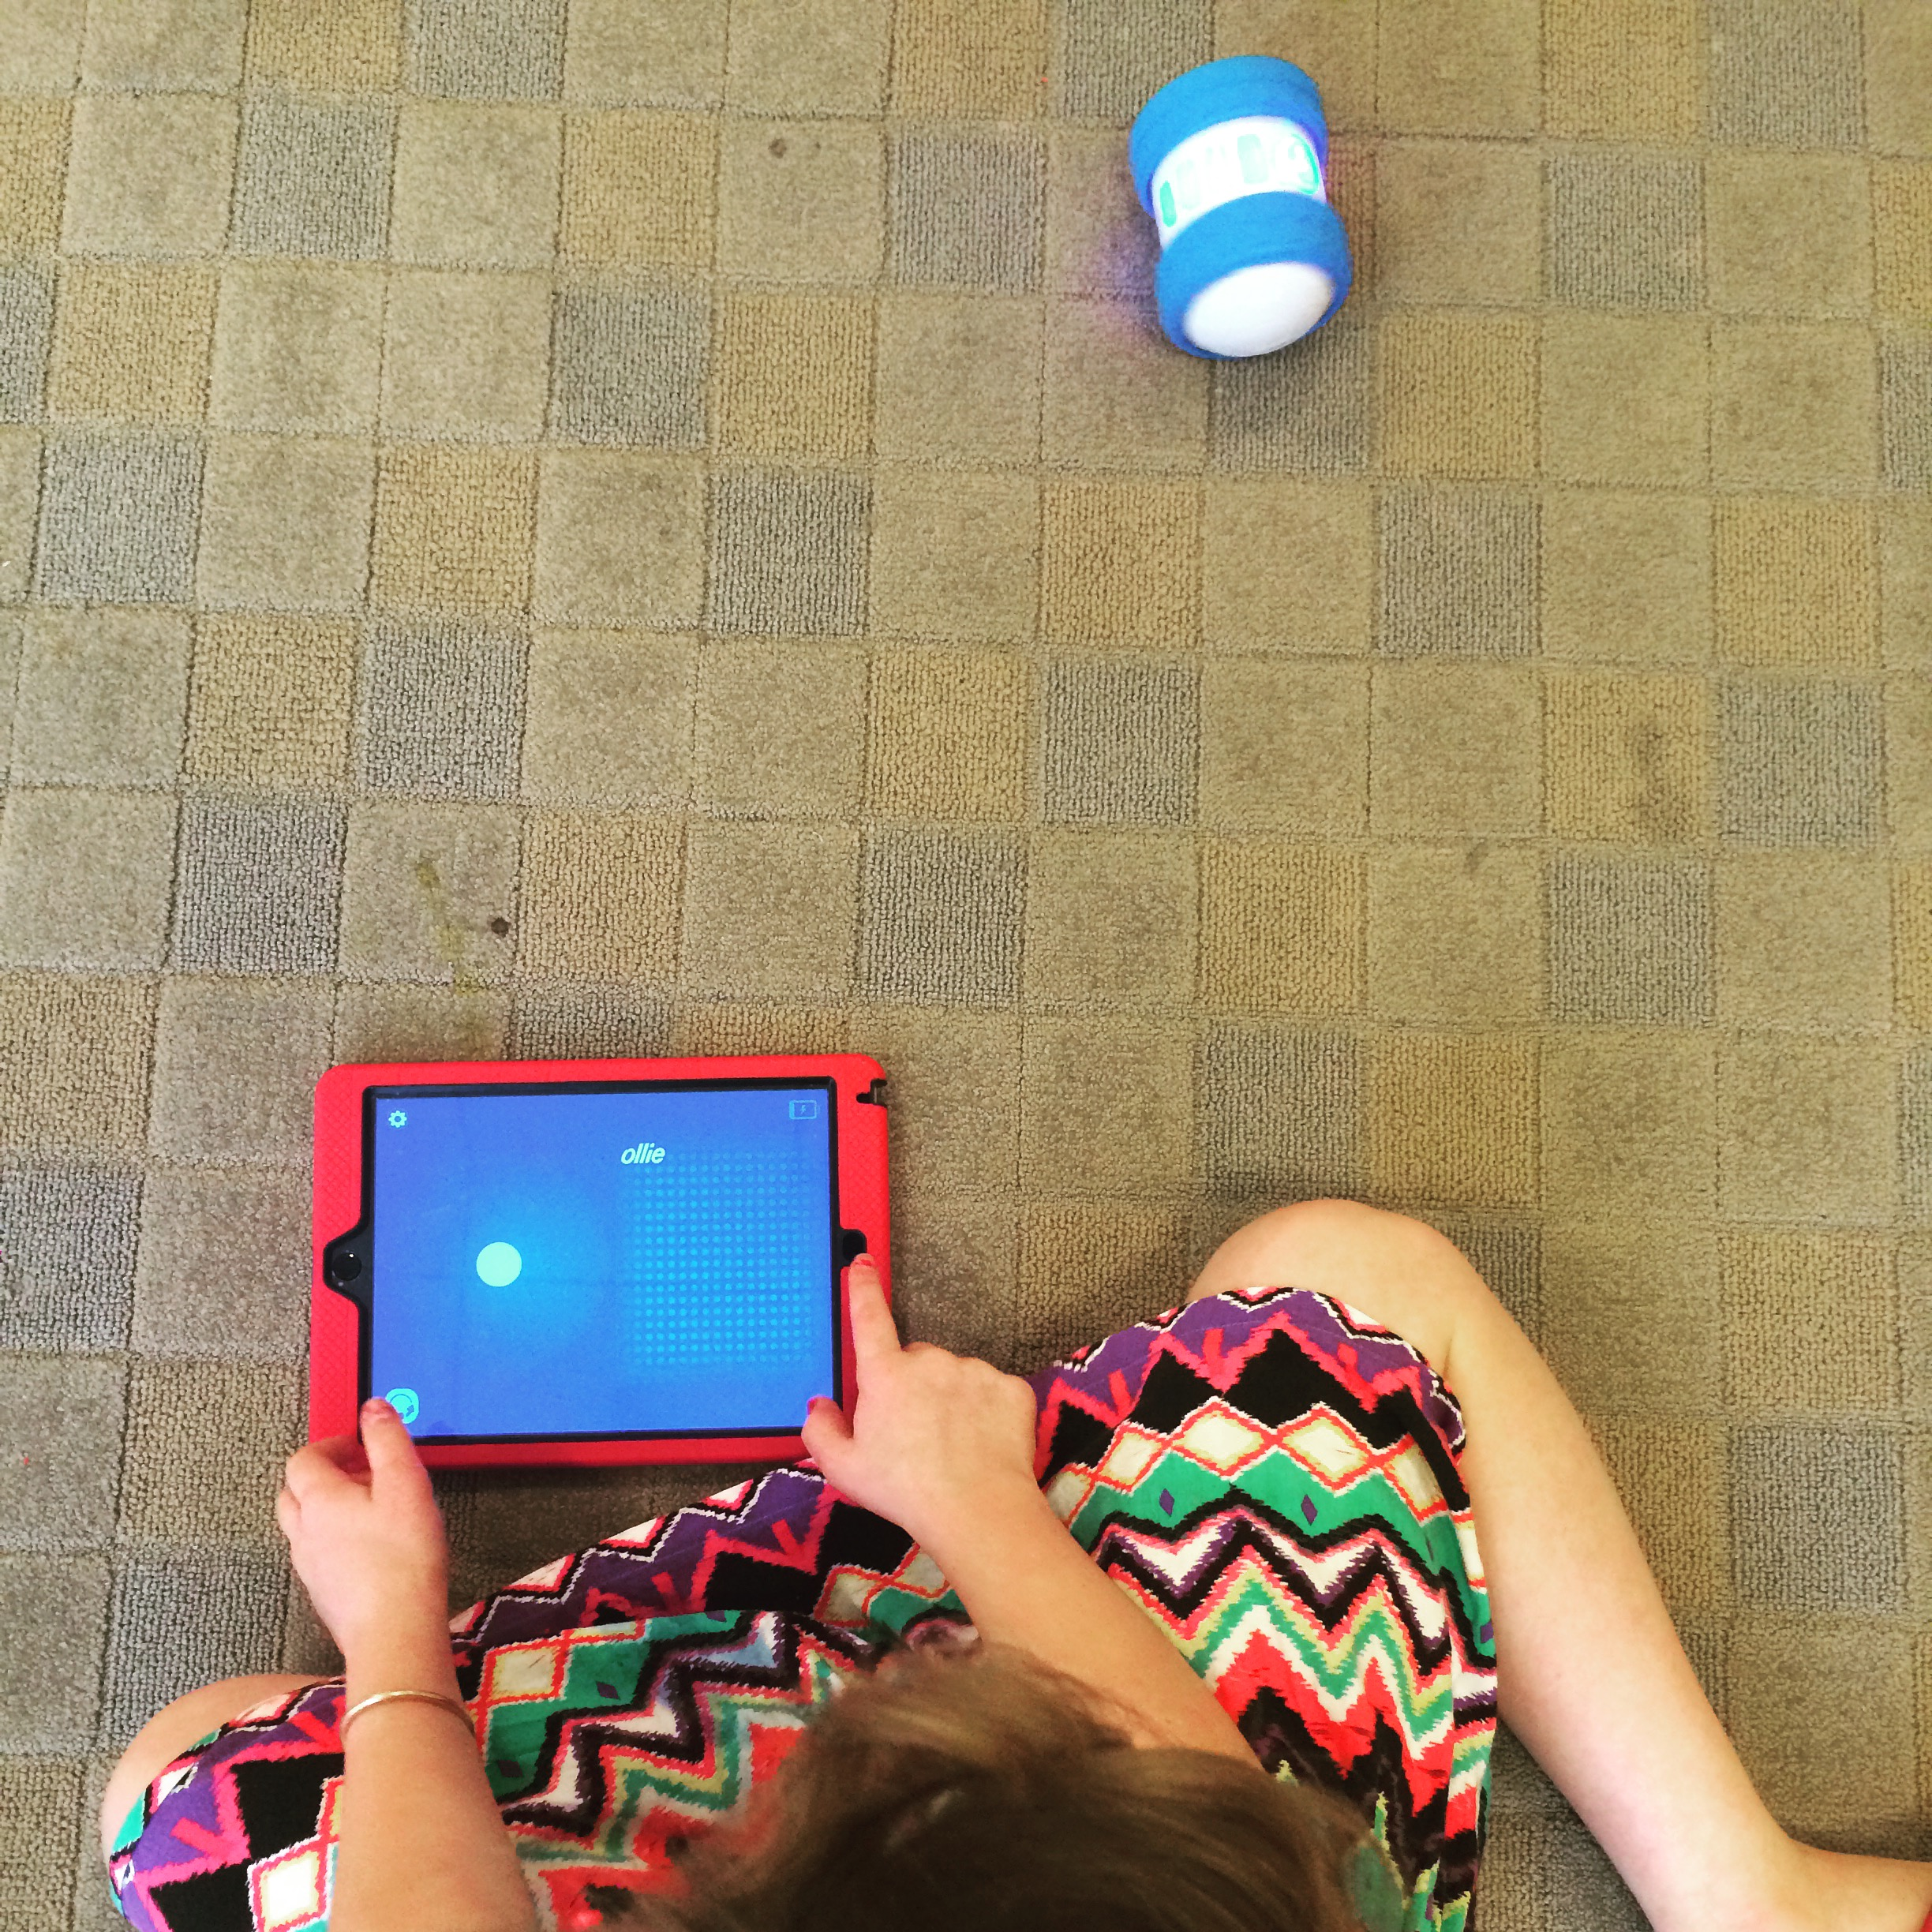 Syncing the Sphero Ollie to get it moving.